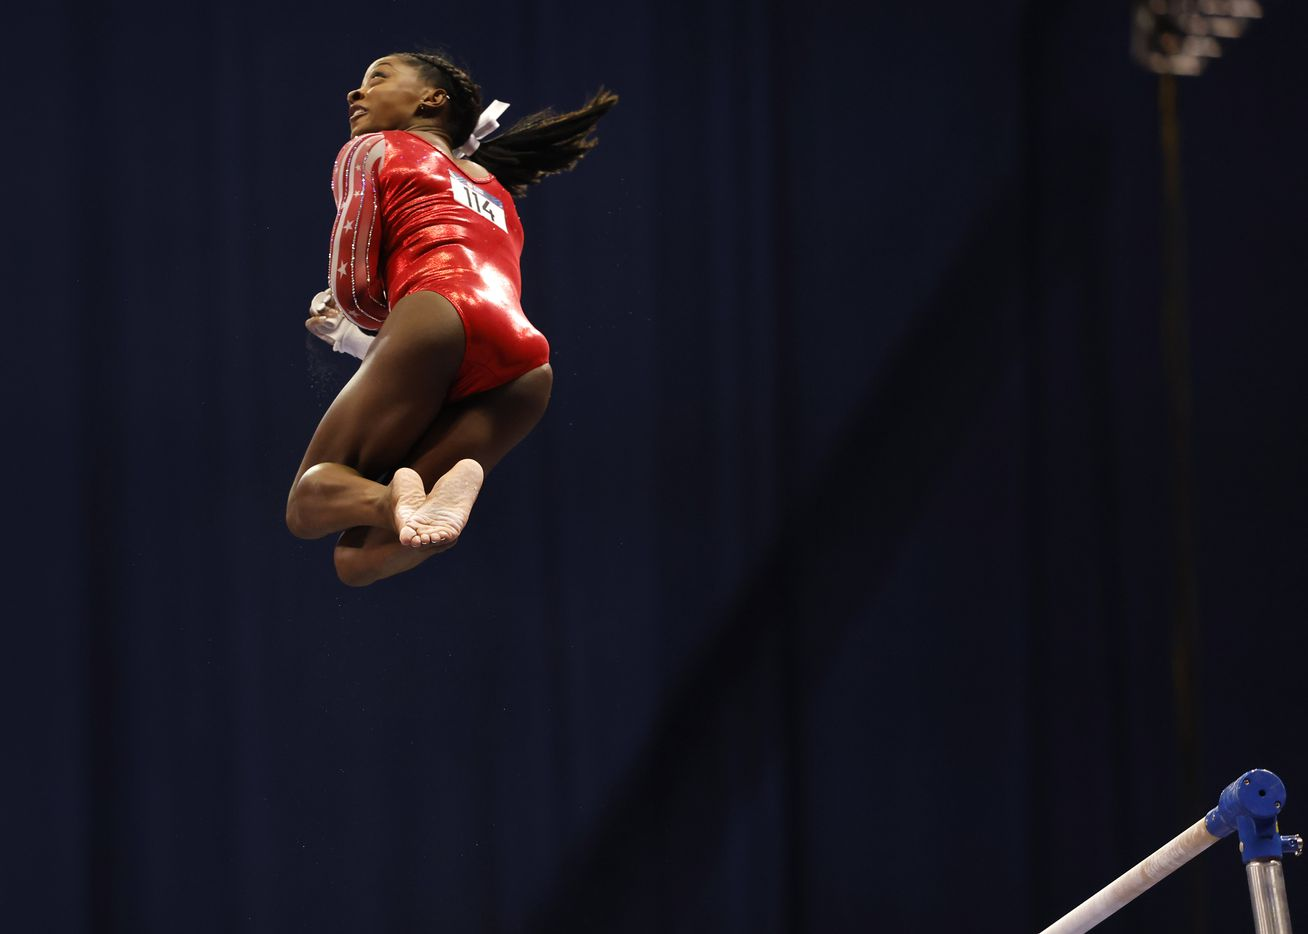 Simone Biles competes on the uneven bars during day 2 of the women's 2021 U.S. Olympic Trials at The Dome at America's Center on Saturday, June 27, 2021 in St Louis, Missouri.(Vernon Bryant/The Dallas Morning News)